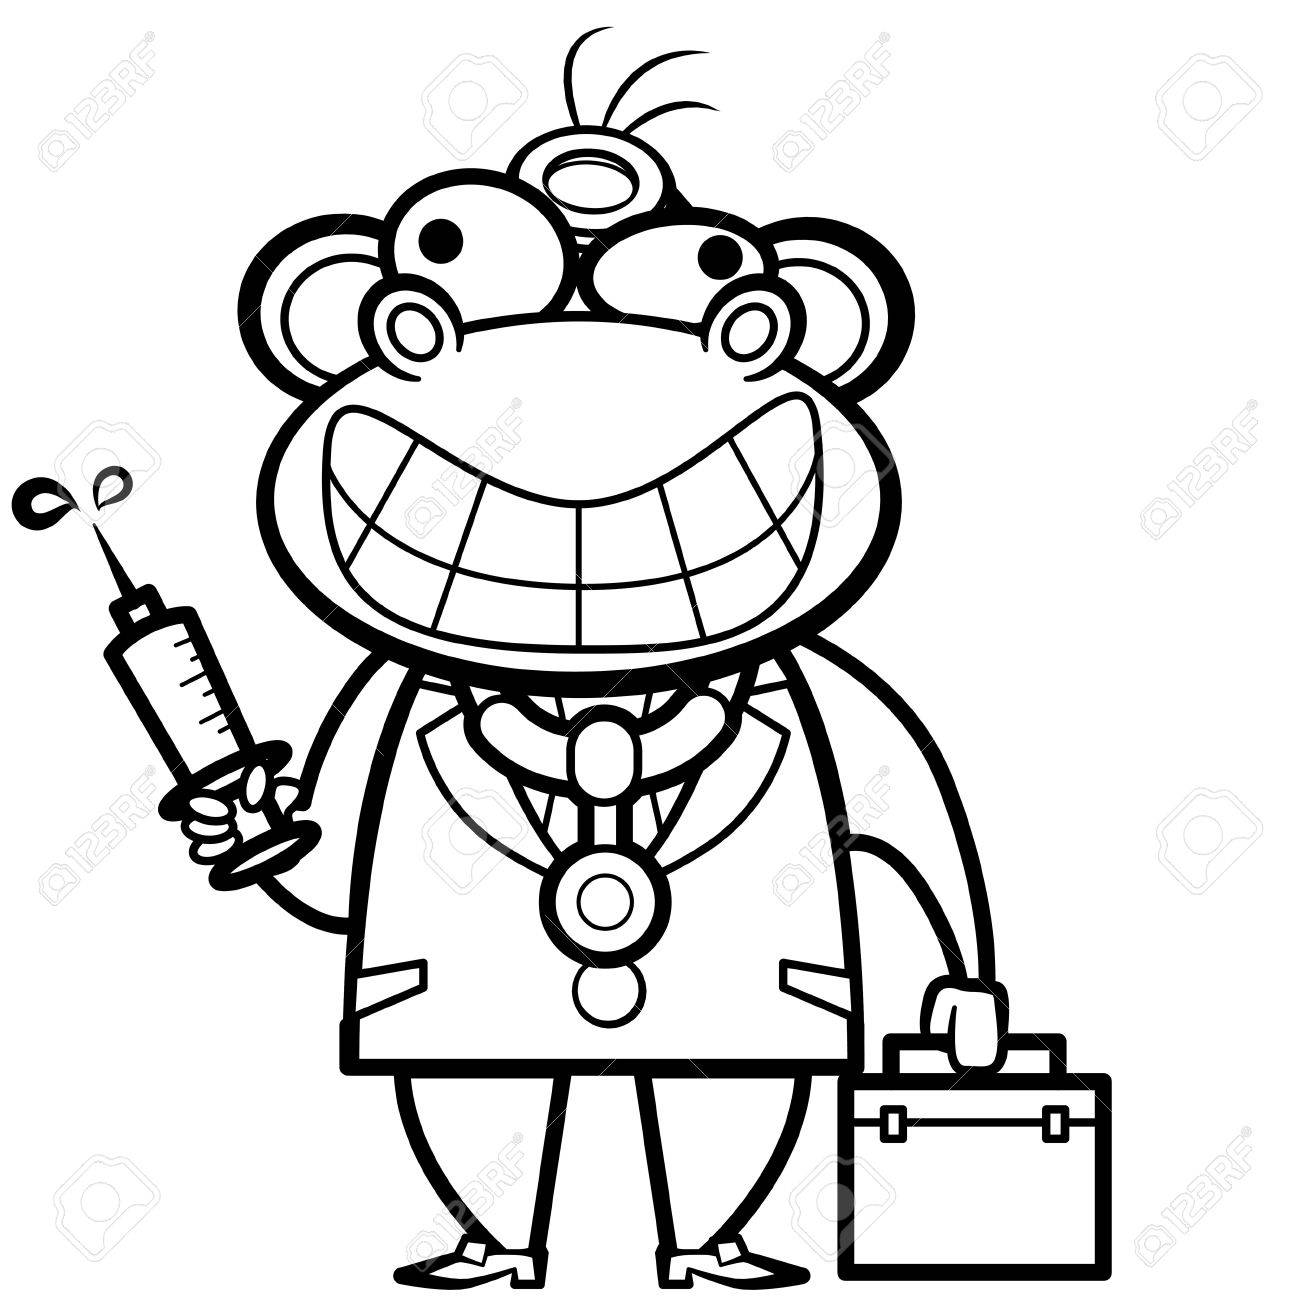 coloring cartoon monkey doctor with first aid kit and syringe